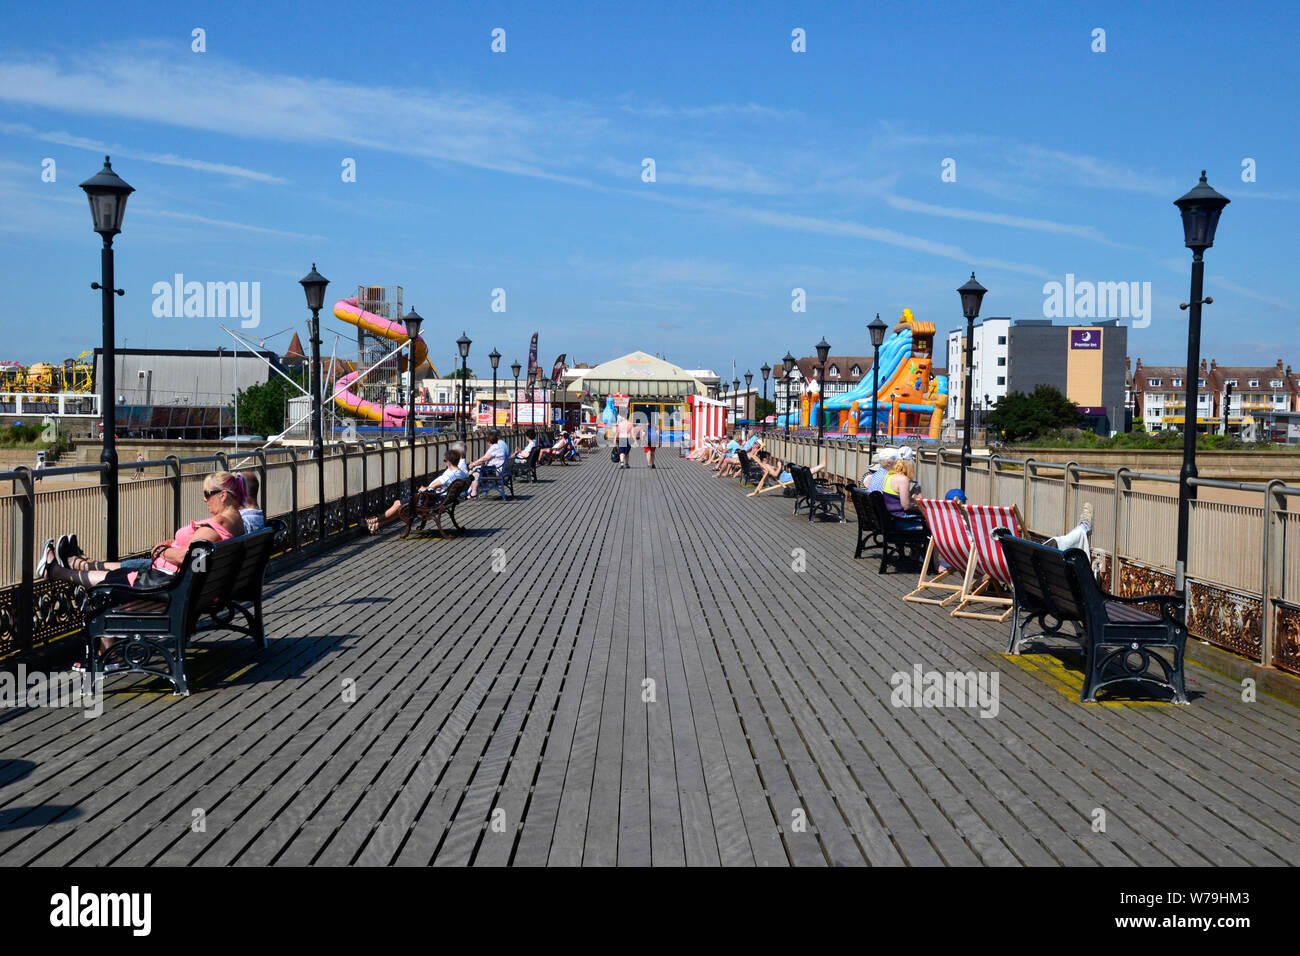 People relaxing on Skegness Pier, the seafront, Skegness, Lincolnshire, UK Stock Photo